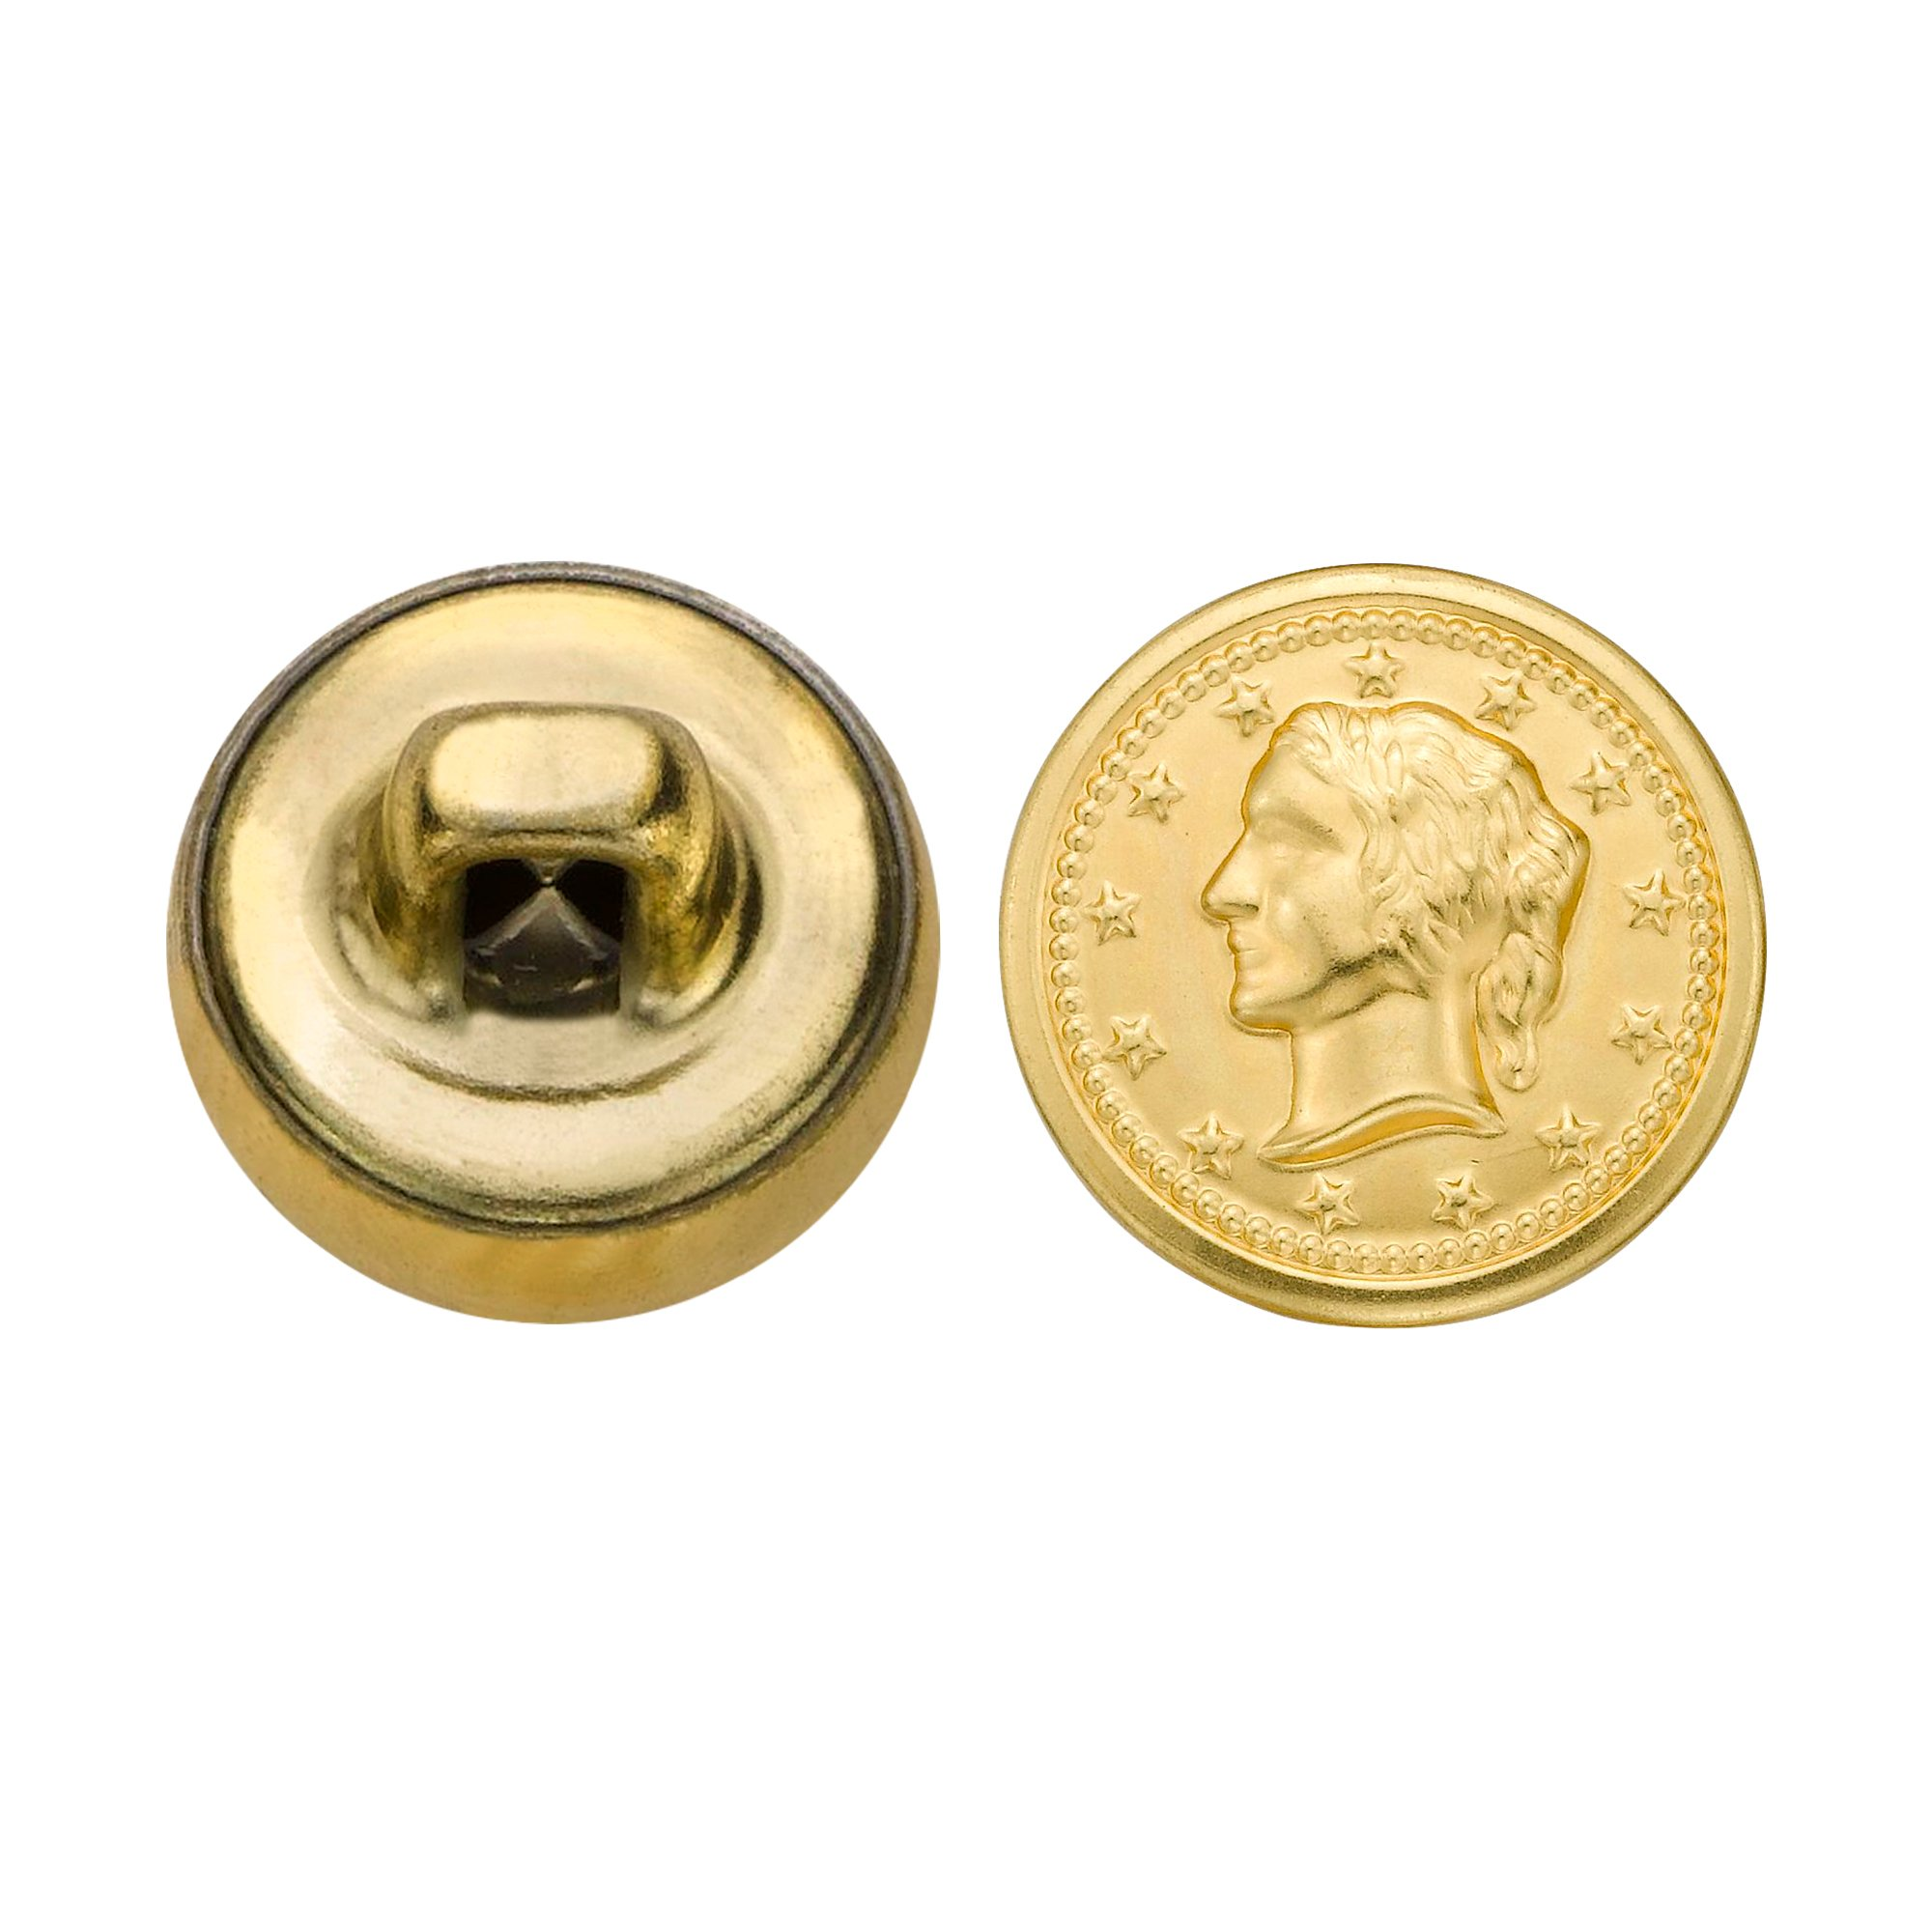 C&C Metal Products 5328 Lady Head Coin Metal Button, Size 20 Ligne, Gold, 144-Pack